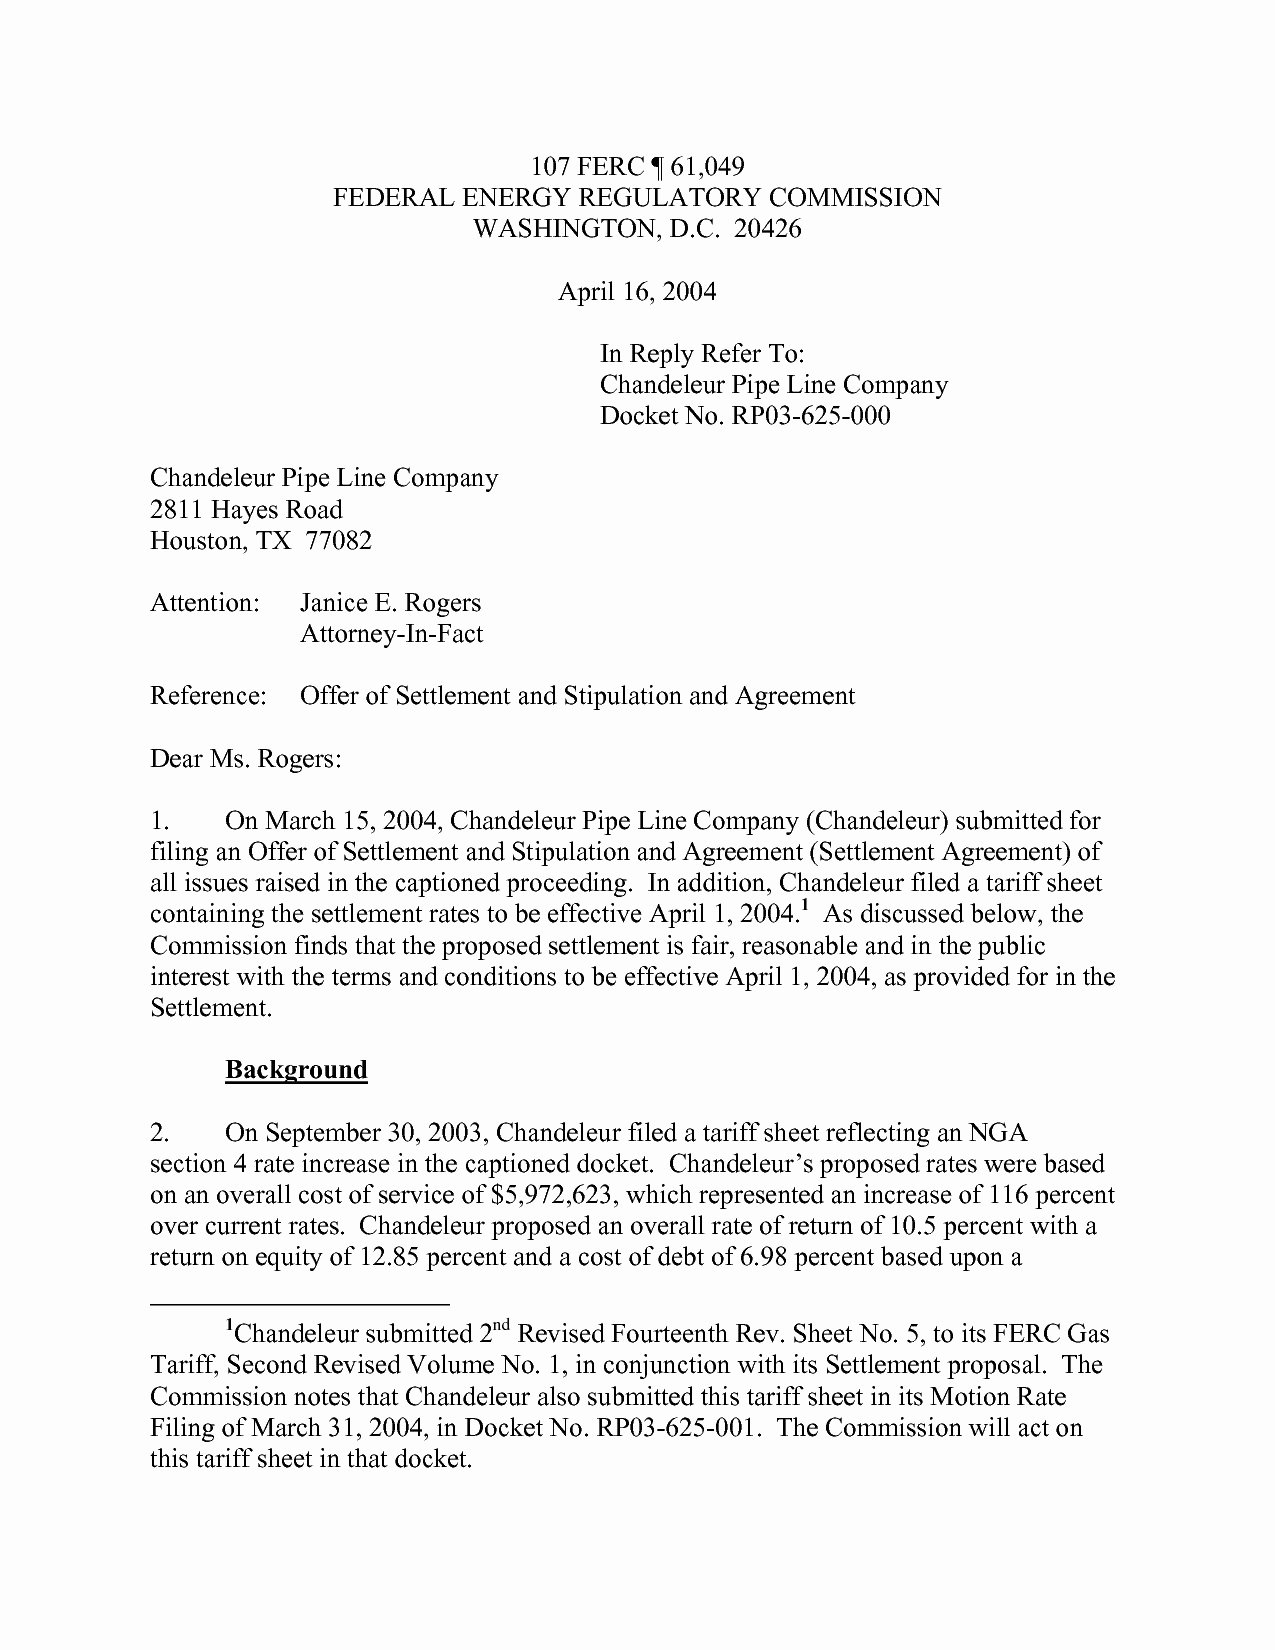 Debt Settlement Agreement Template Luxury Debt Settlement Agreement Letter Template Collection